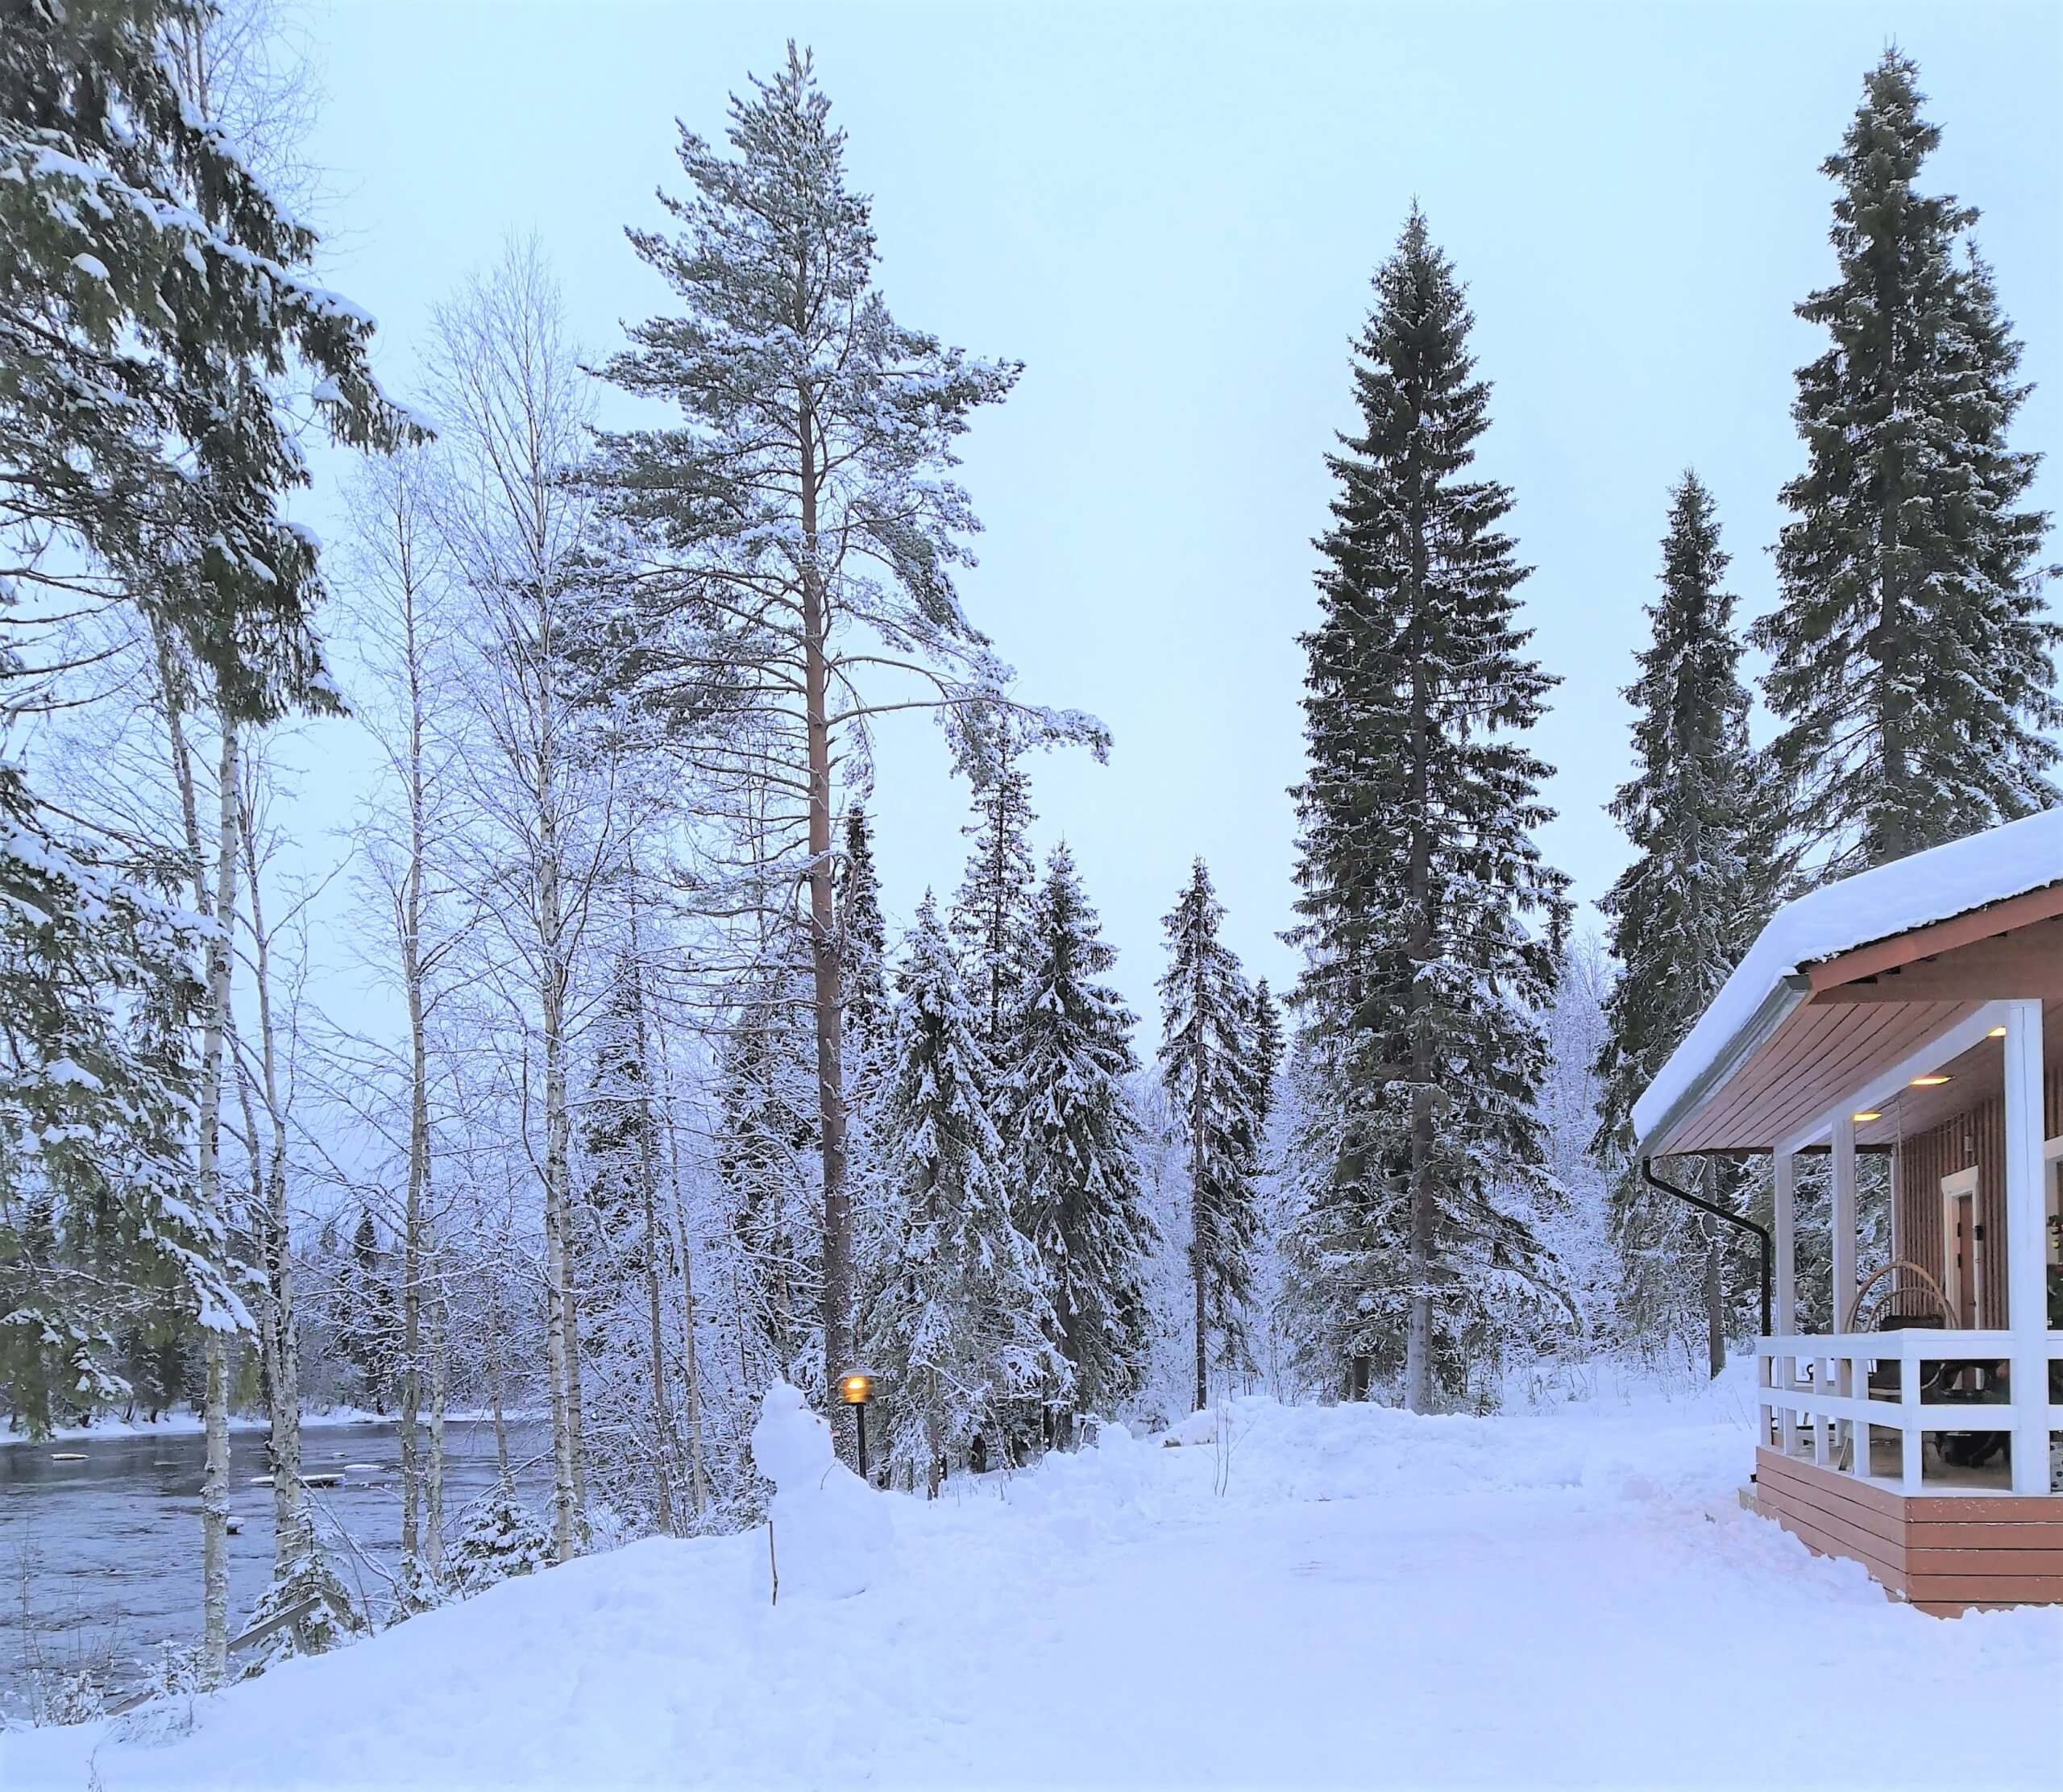 Lapland for under £2K: How to Plan a Budget Lapland holiday - Part One